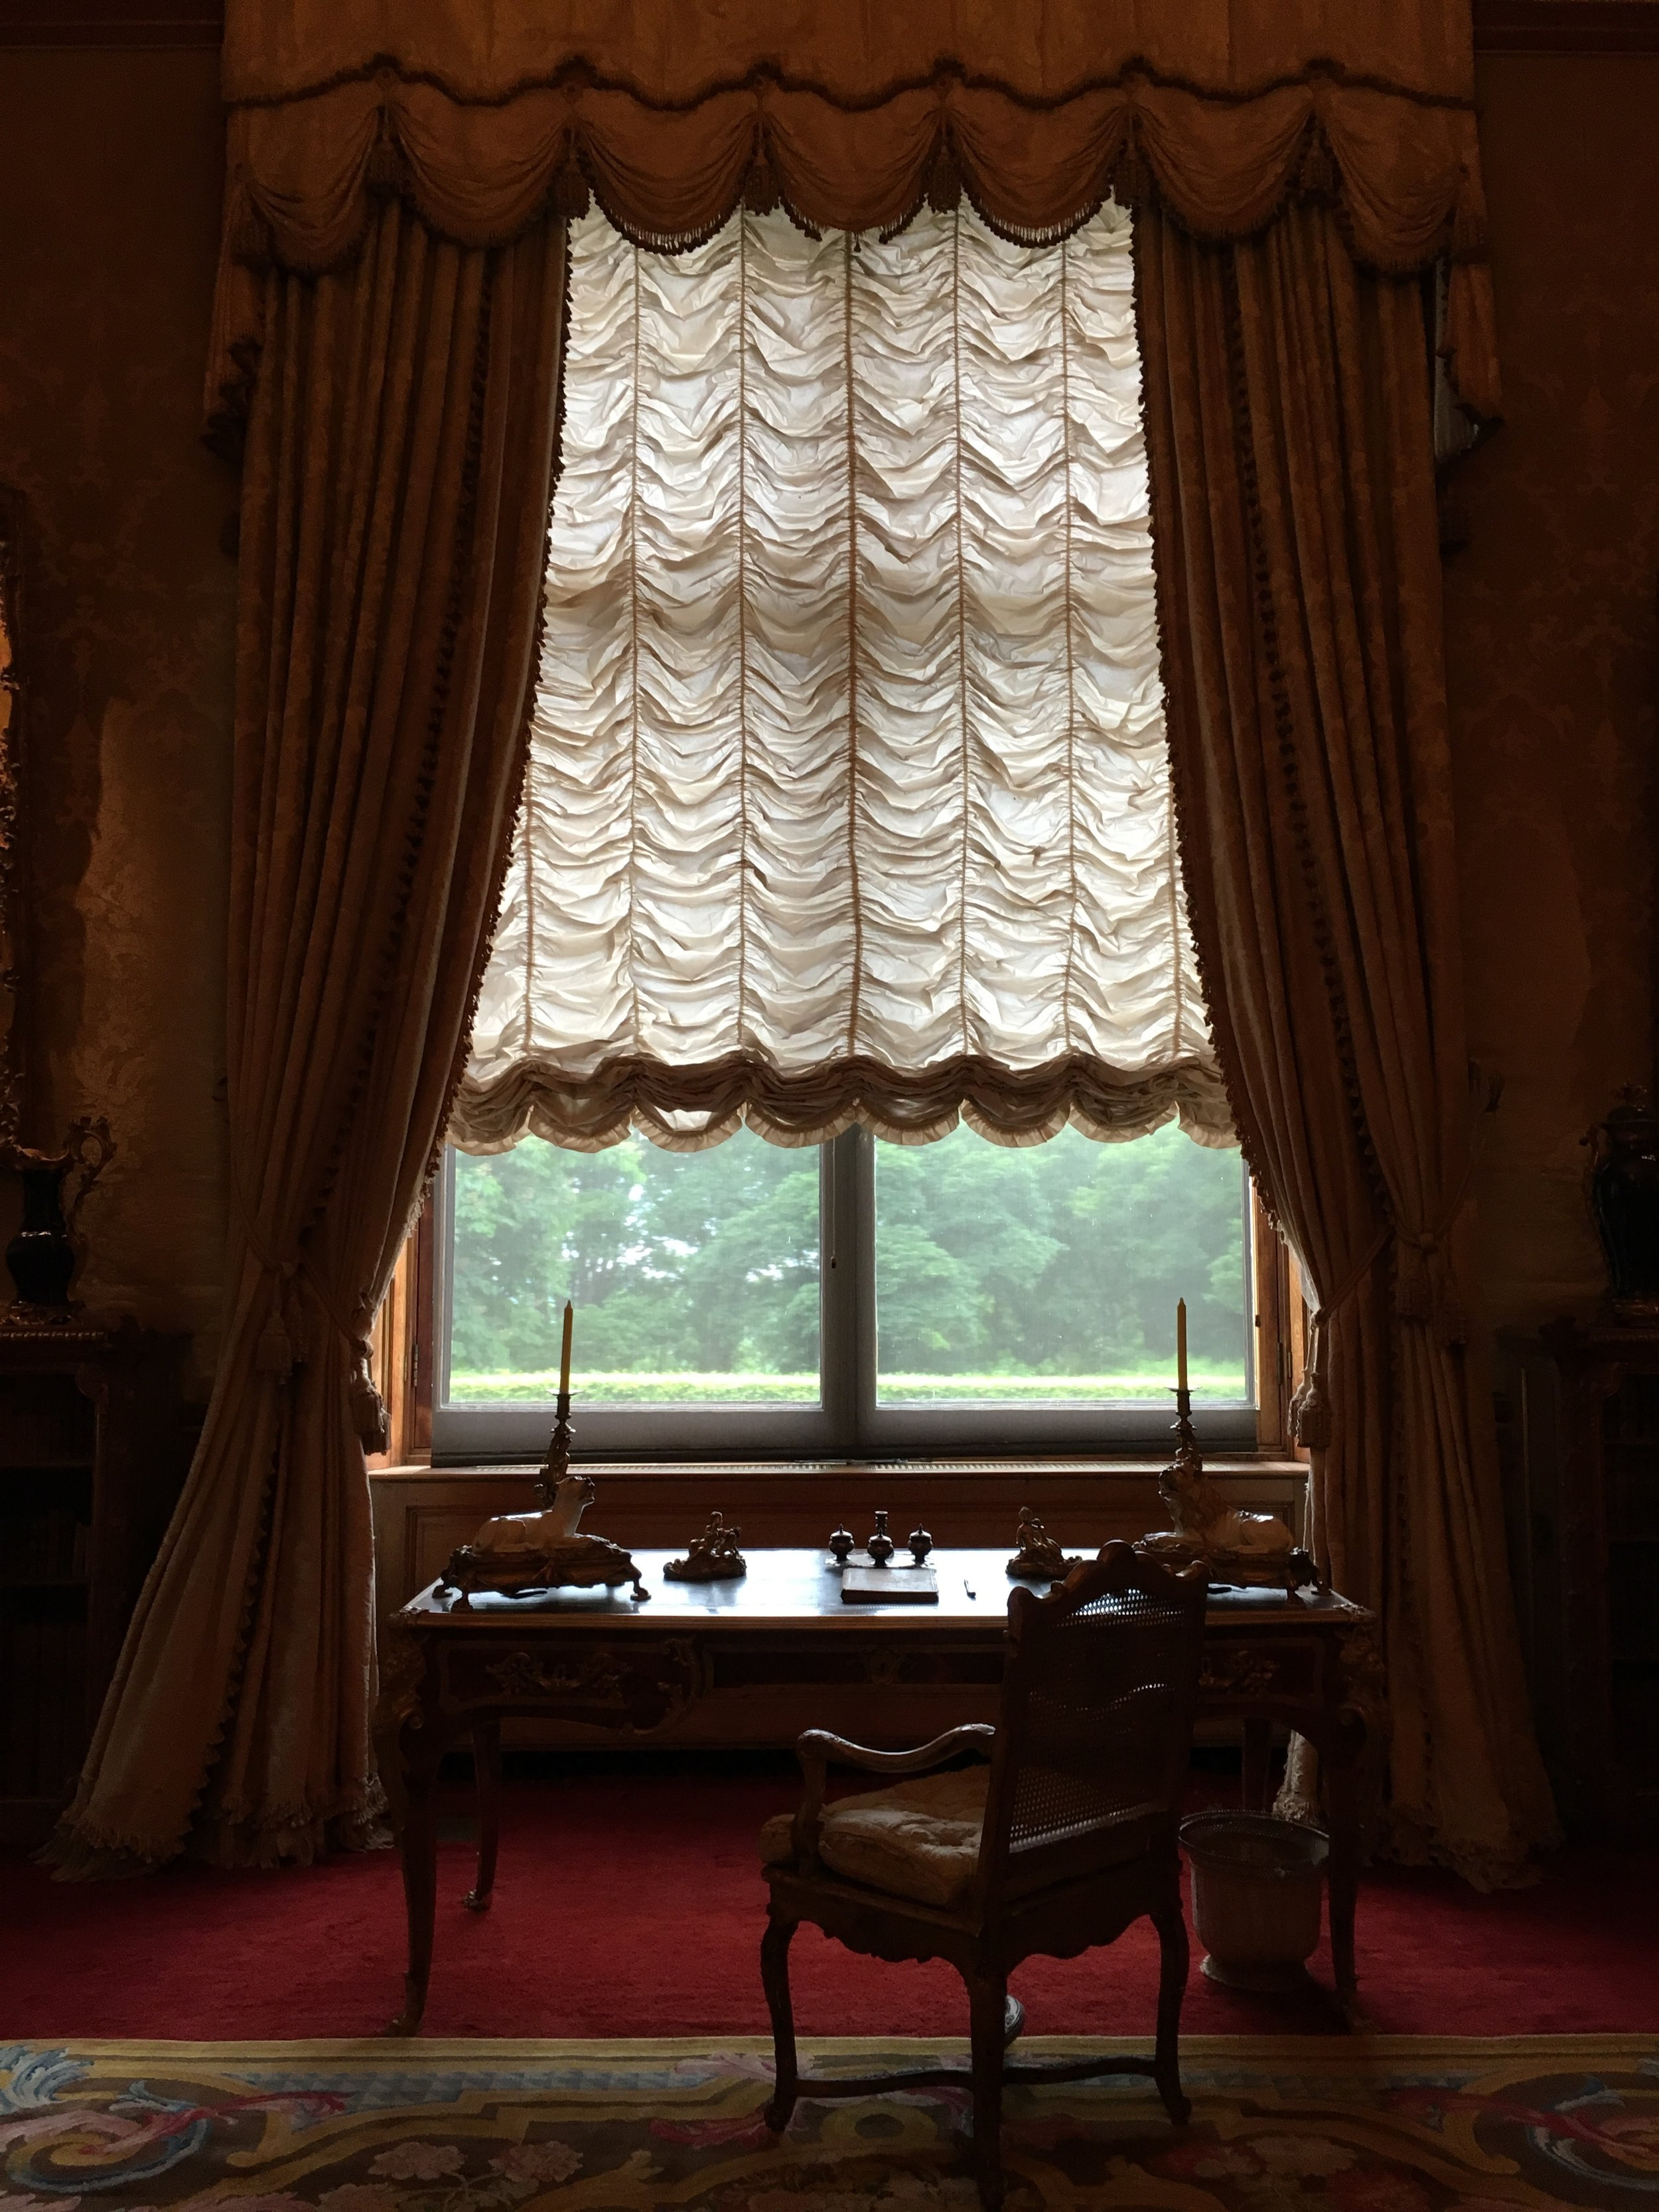 UK Waddesdon Manor study National Trust French Chateau Rothschild Buckinghamshire garden chateau Eileen Hsieh Follow That Bug .jpg